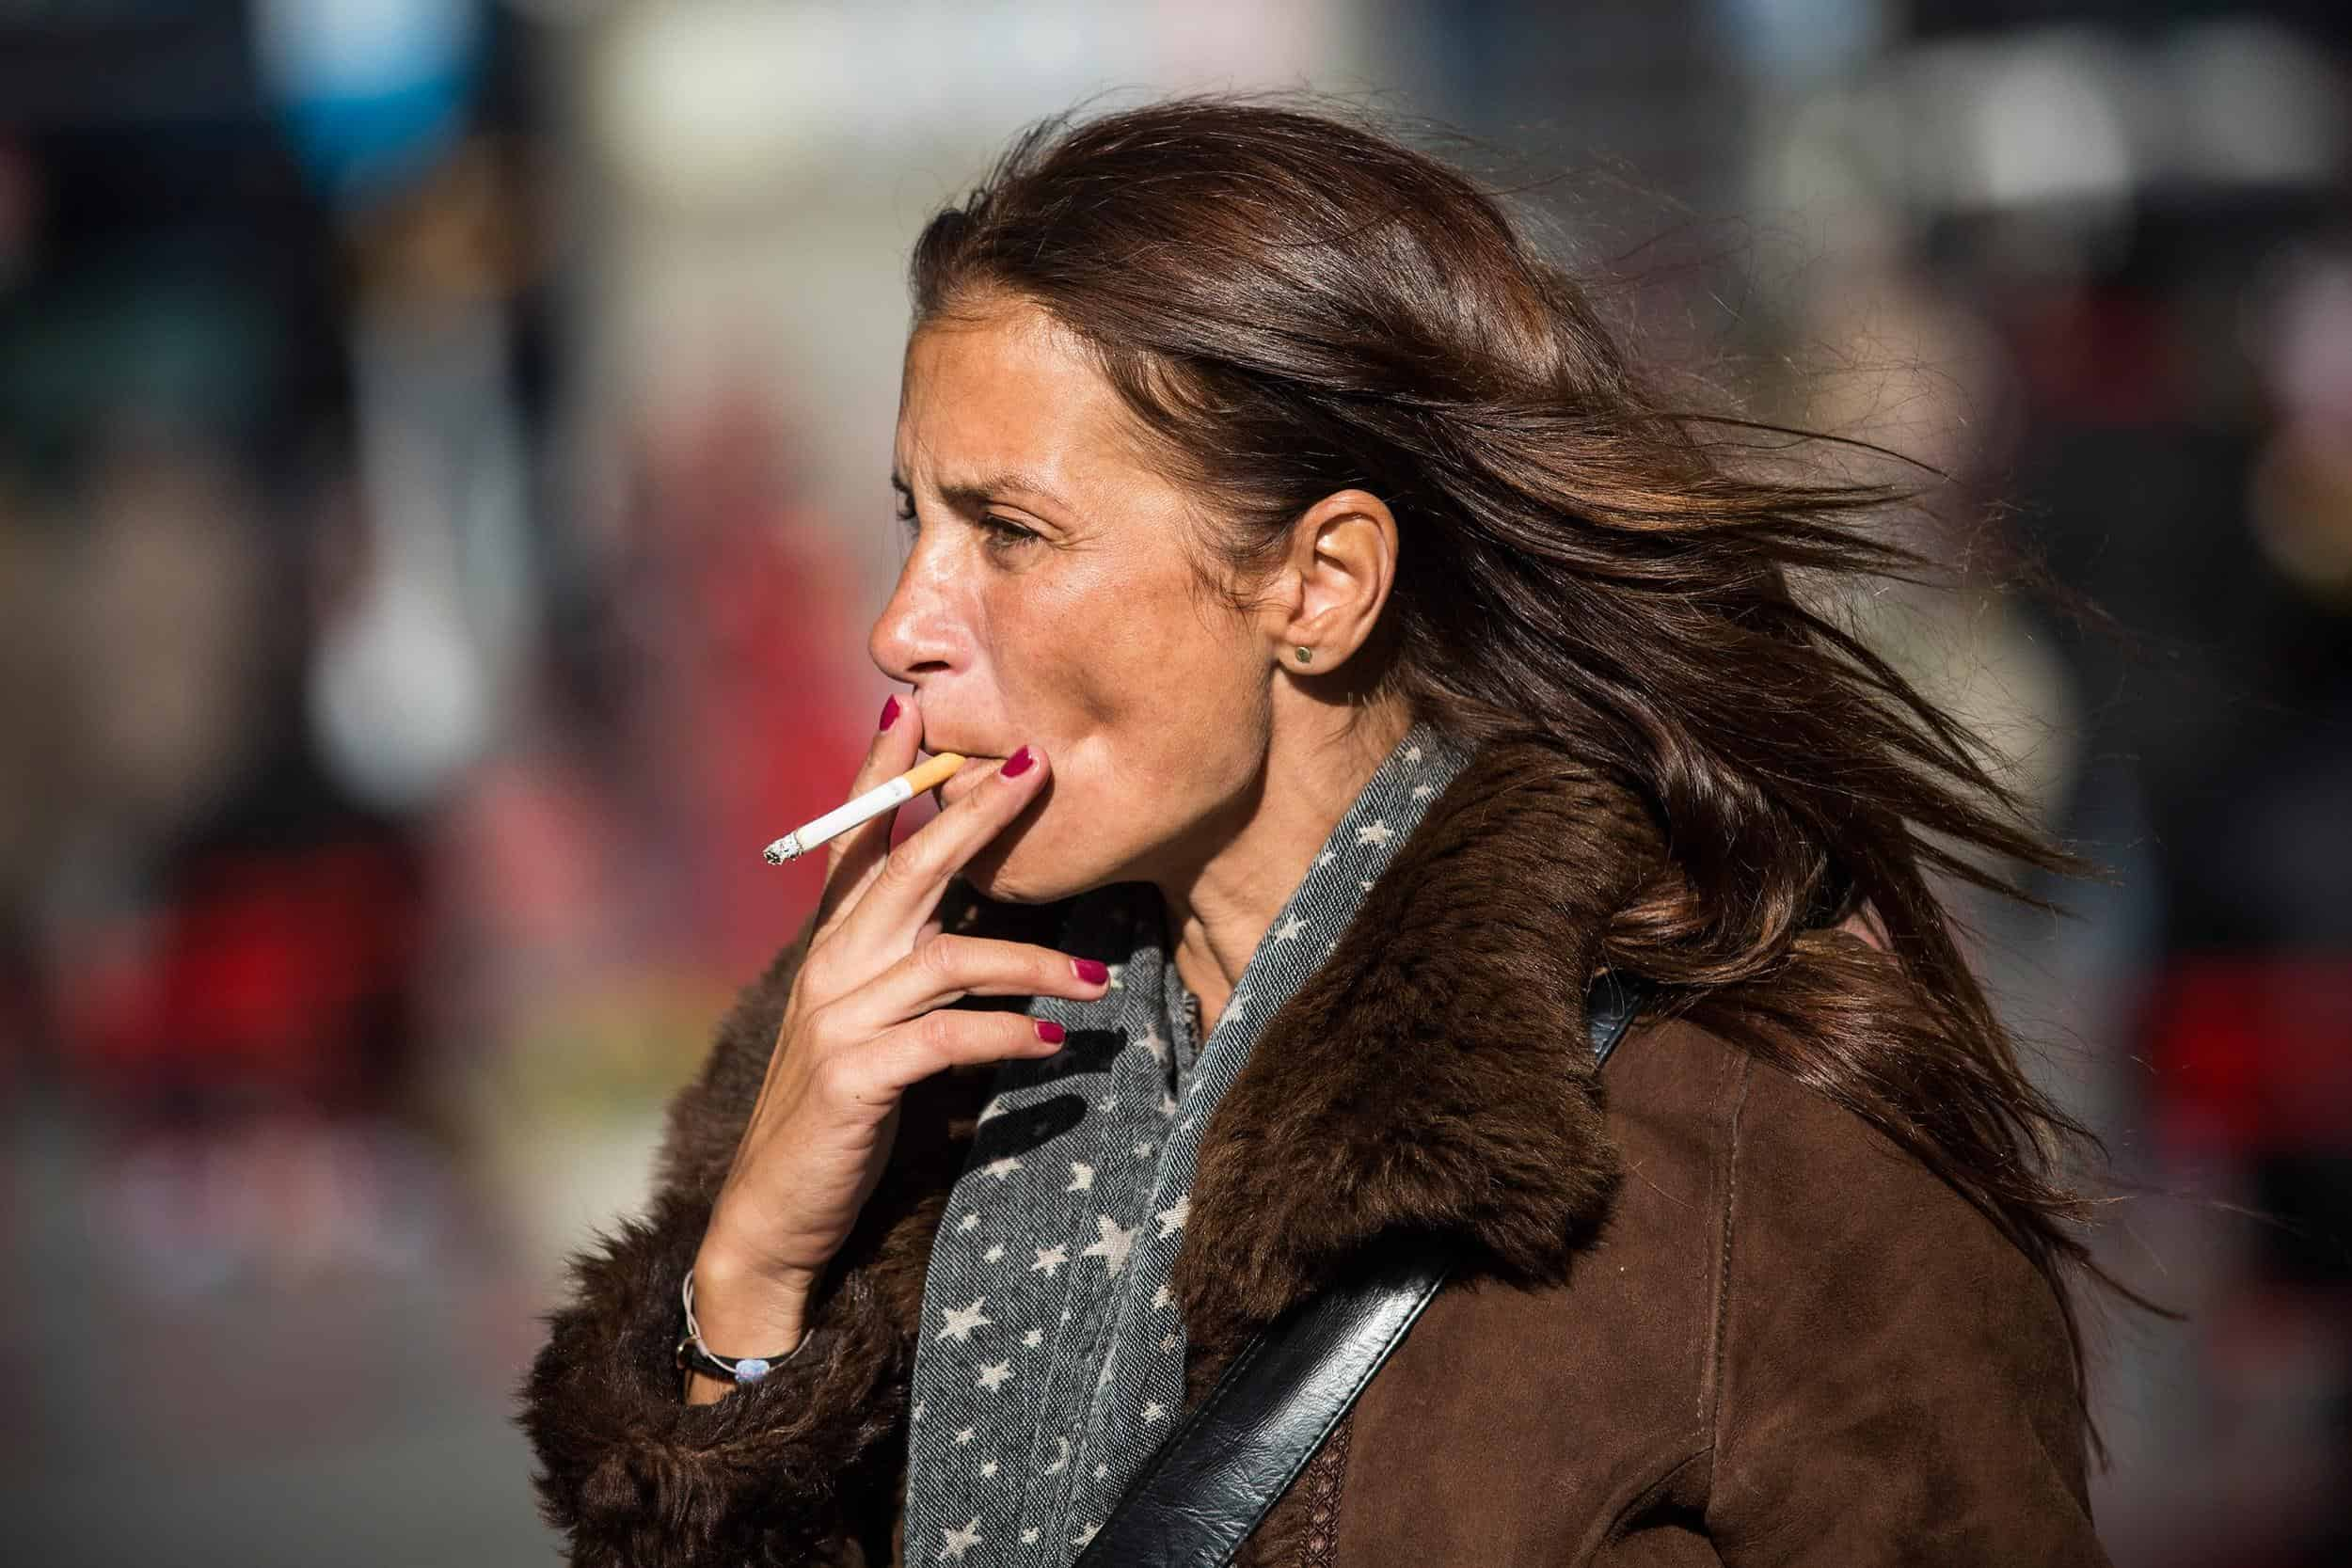 Scientists Discover Link Between Nicotine and Breast Cancer Metastasis